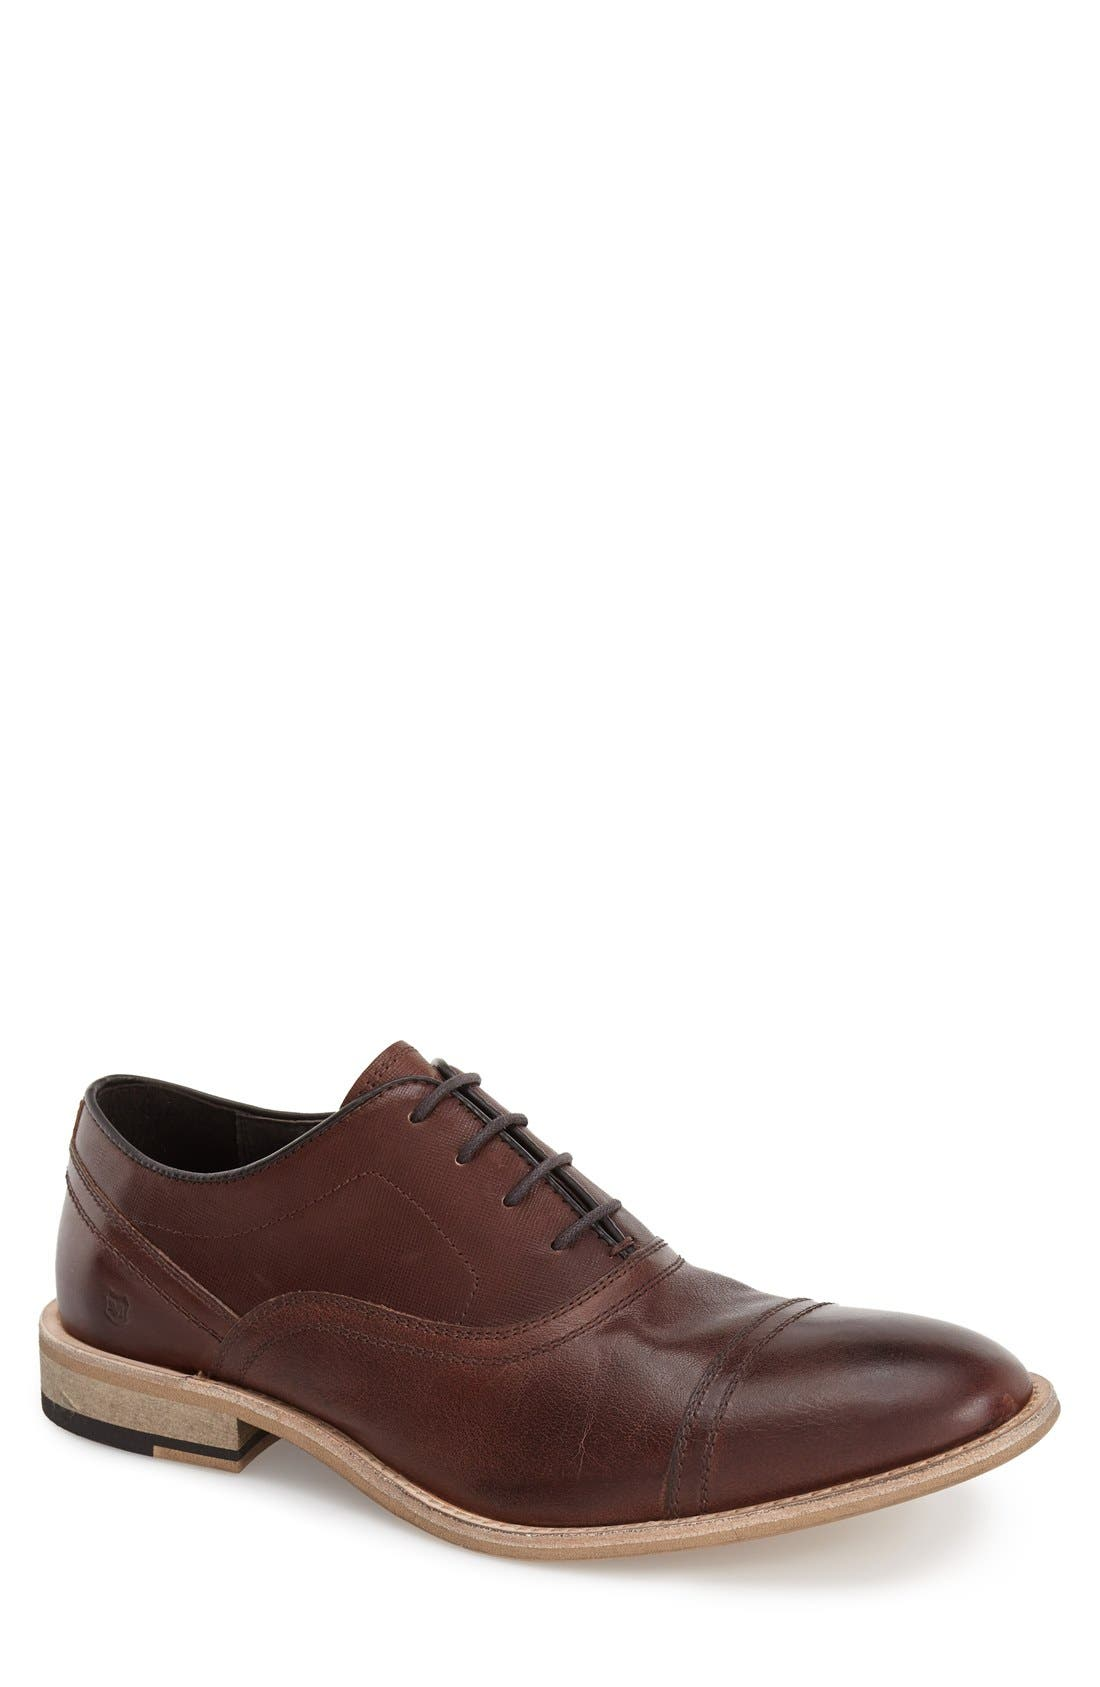 Main Image - Andrew Marc 'Henry' Cap Toe Oxford (Men)